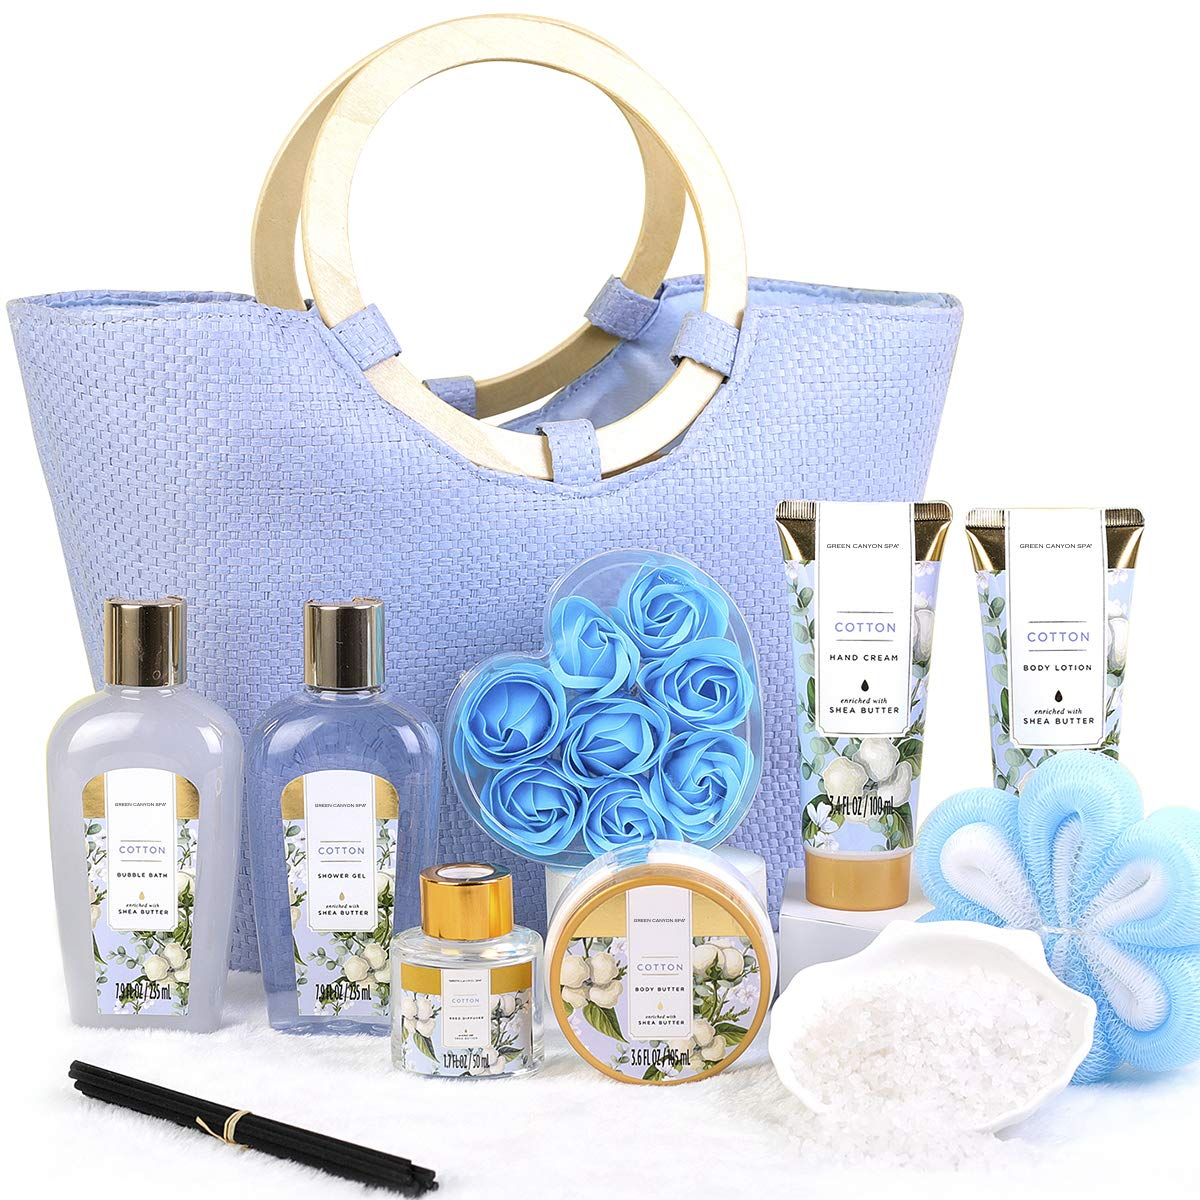 Christmas Gift Set for Women- 10pcs Cotton Scent Gift Box in Exquisite Tote Bag, Shower Gel, Bath Salts, Reed Diffuser, Best Gift Baskets for Women's Valentine, Birthday : Beauty